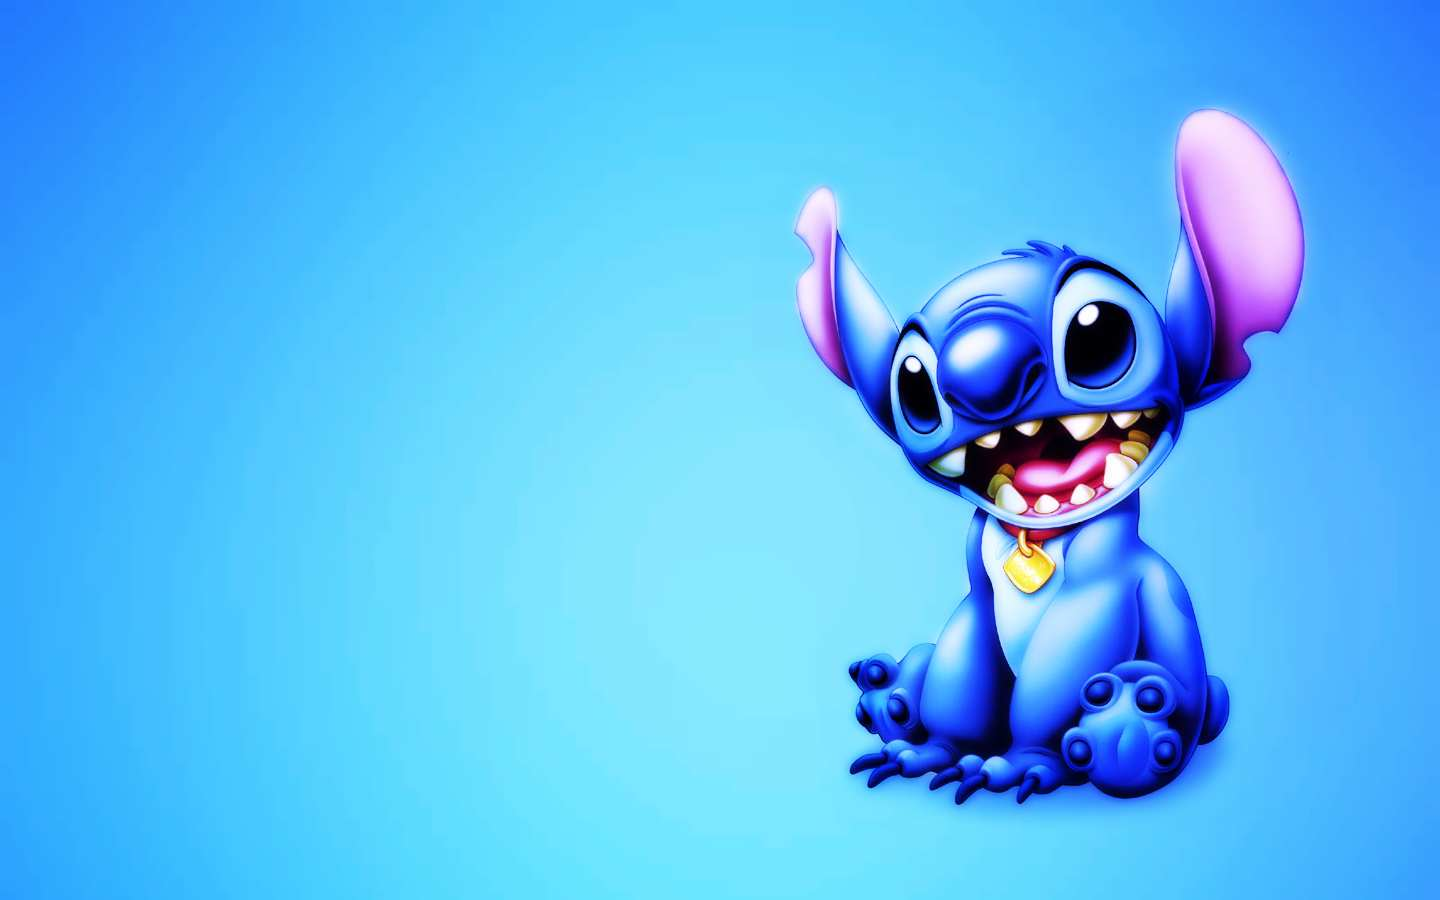 Cute Hd Wallpapers Pinterest Stitch Wallpapers Group 64